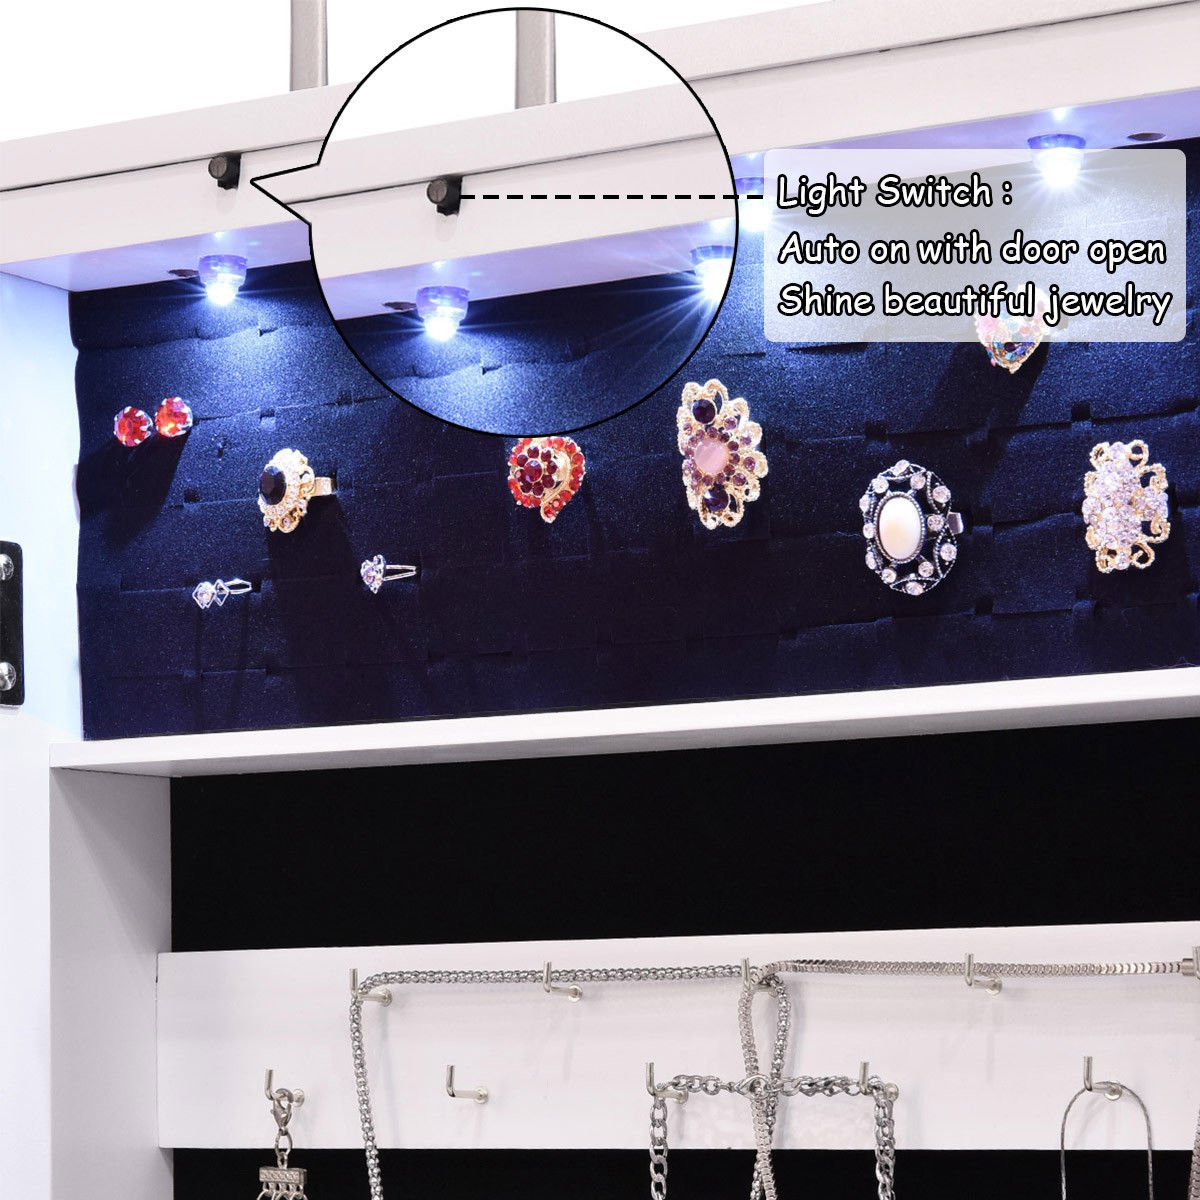 Giantex Wall Door Mounted Jewelry Armoire Organizer with Mirror Locking Organizer with LED Lights by Giantex (Image #8)